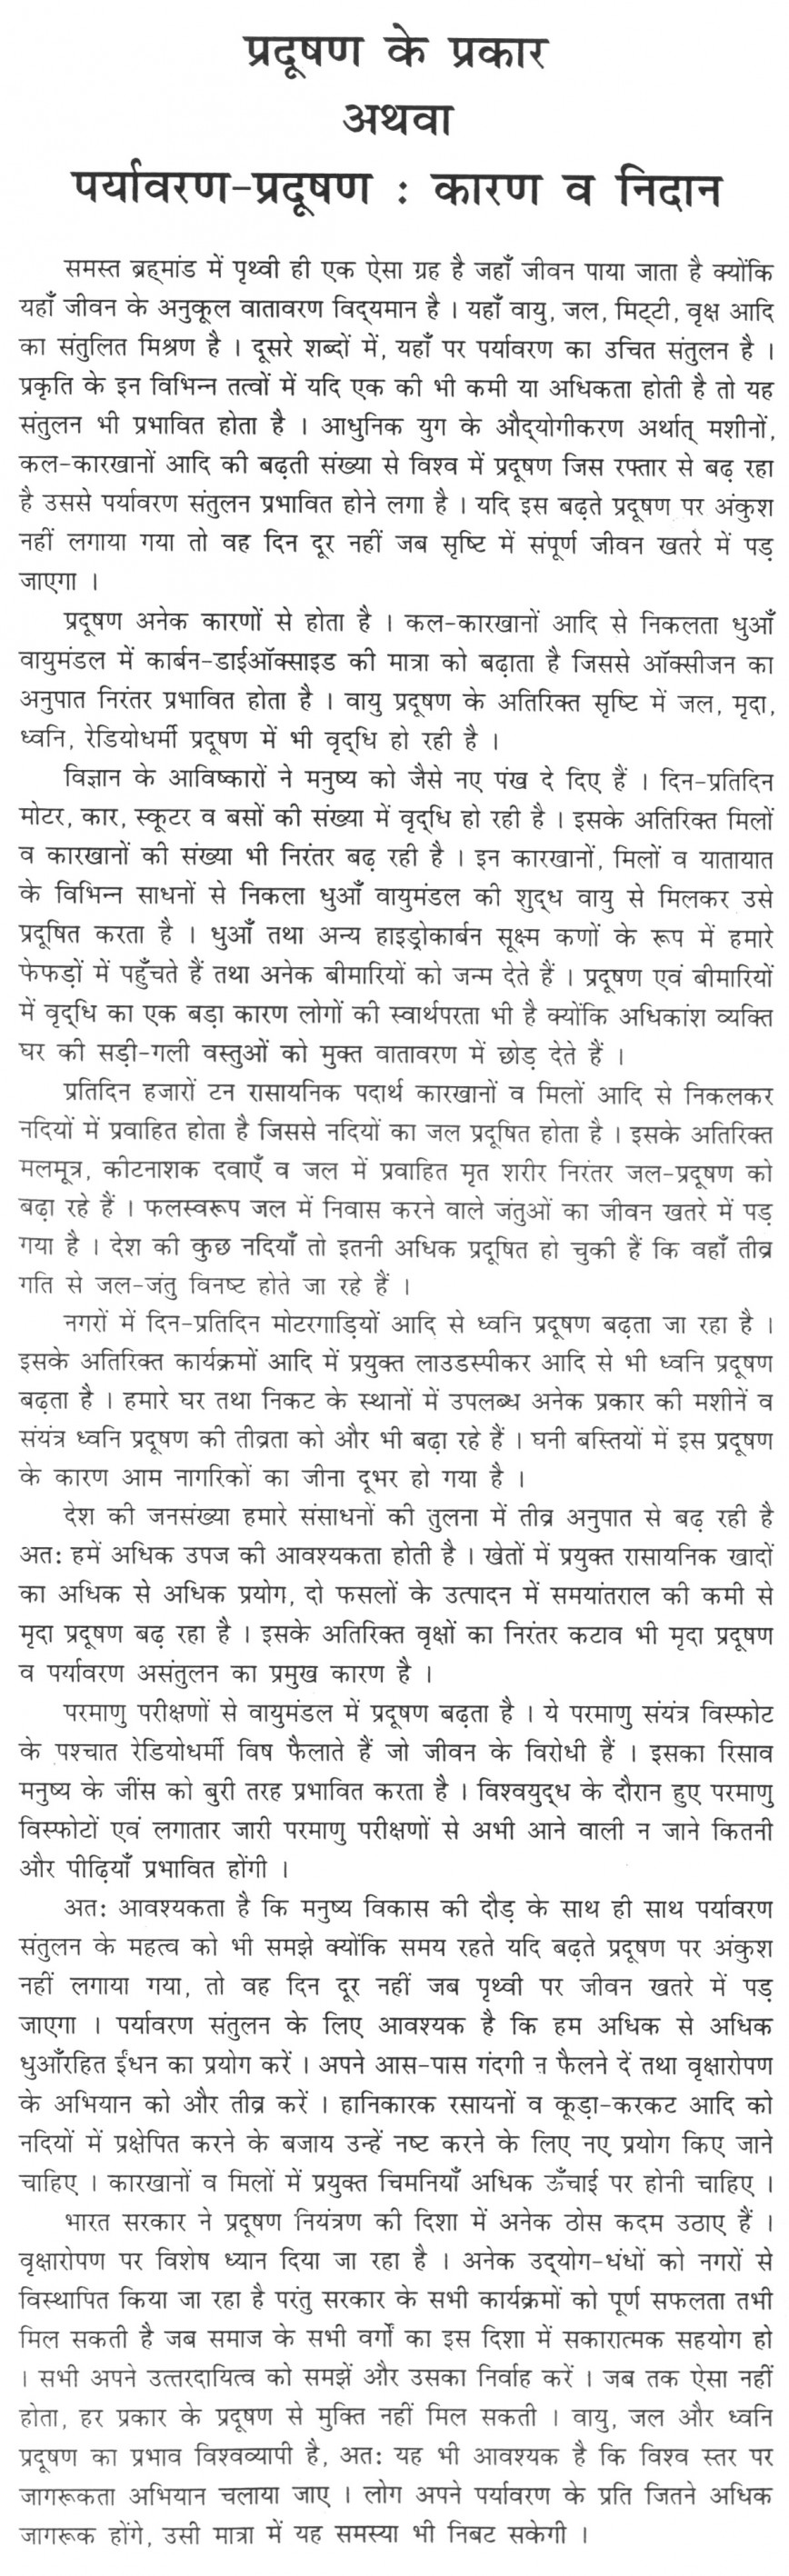 014 Good Habits Essay In Hindi Exceptional Healthy Eating Reading Is A Habit 868